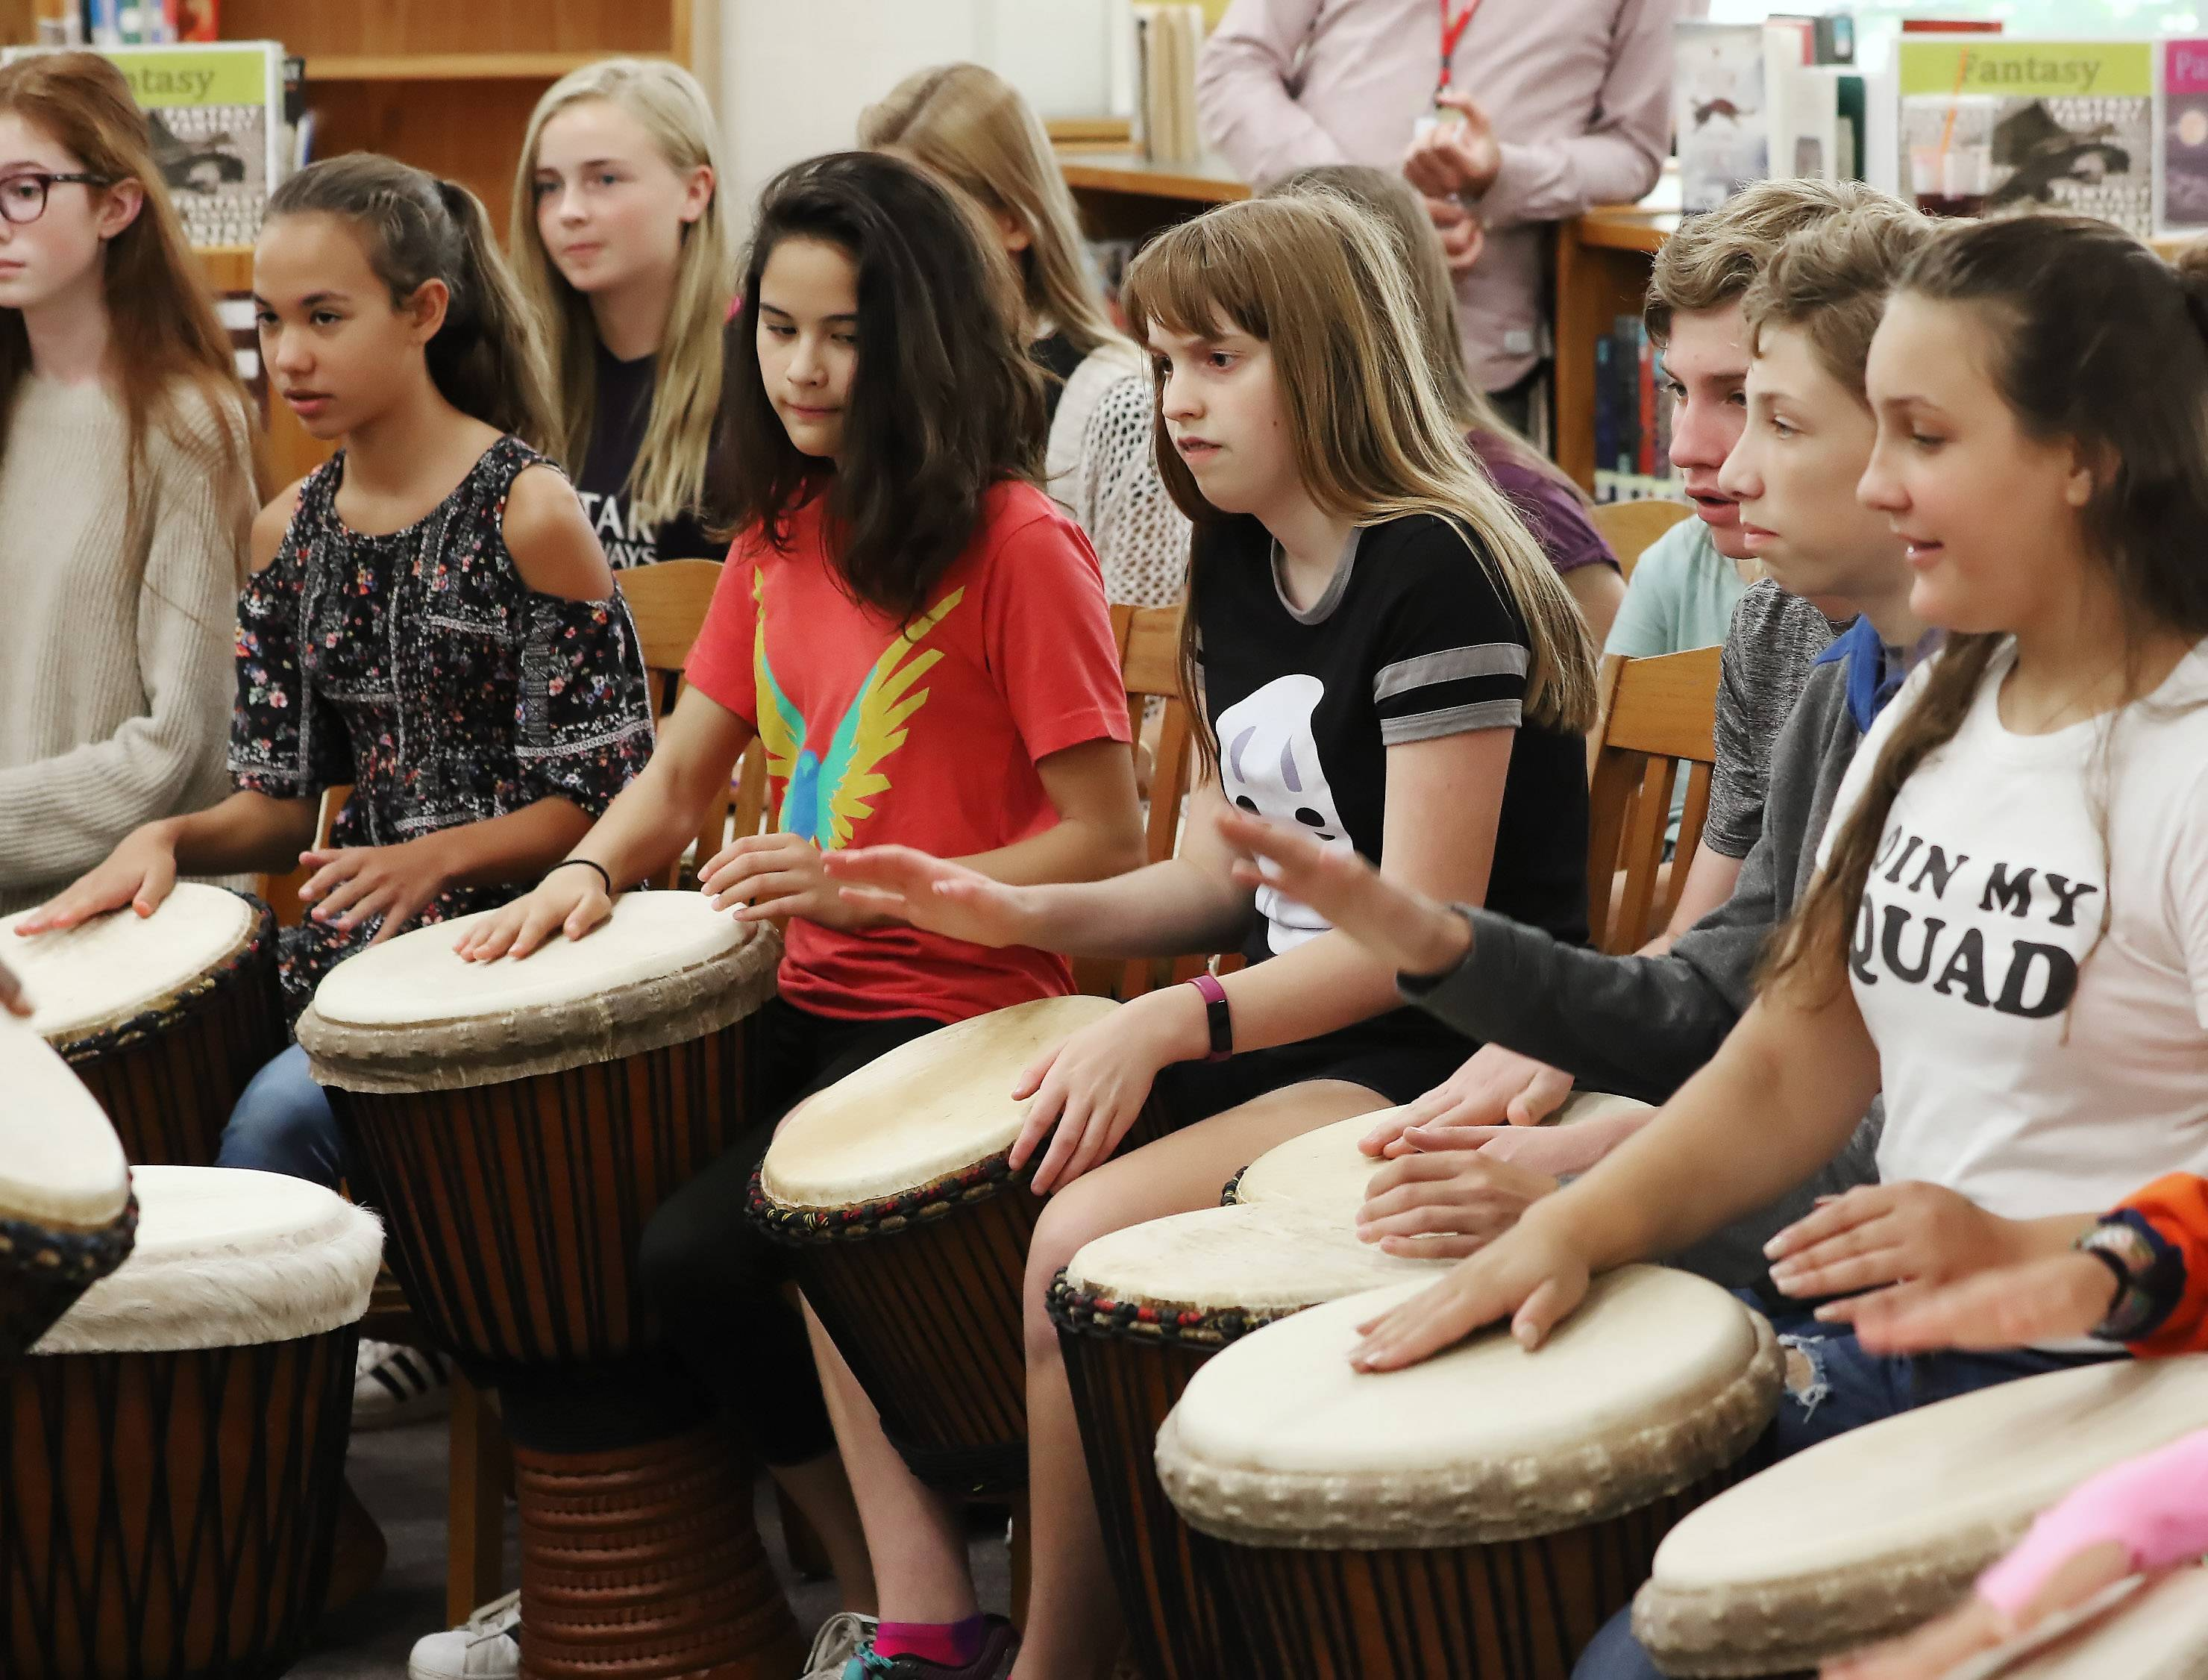 Students learn to play the djembe drums Thursday at Highland Middle School in Libertyville. West African musician Fode Camara and Helen Bond of the Benkadi Project provided instruction on the drums as part of a cultural learning experience.